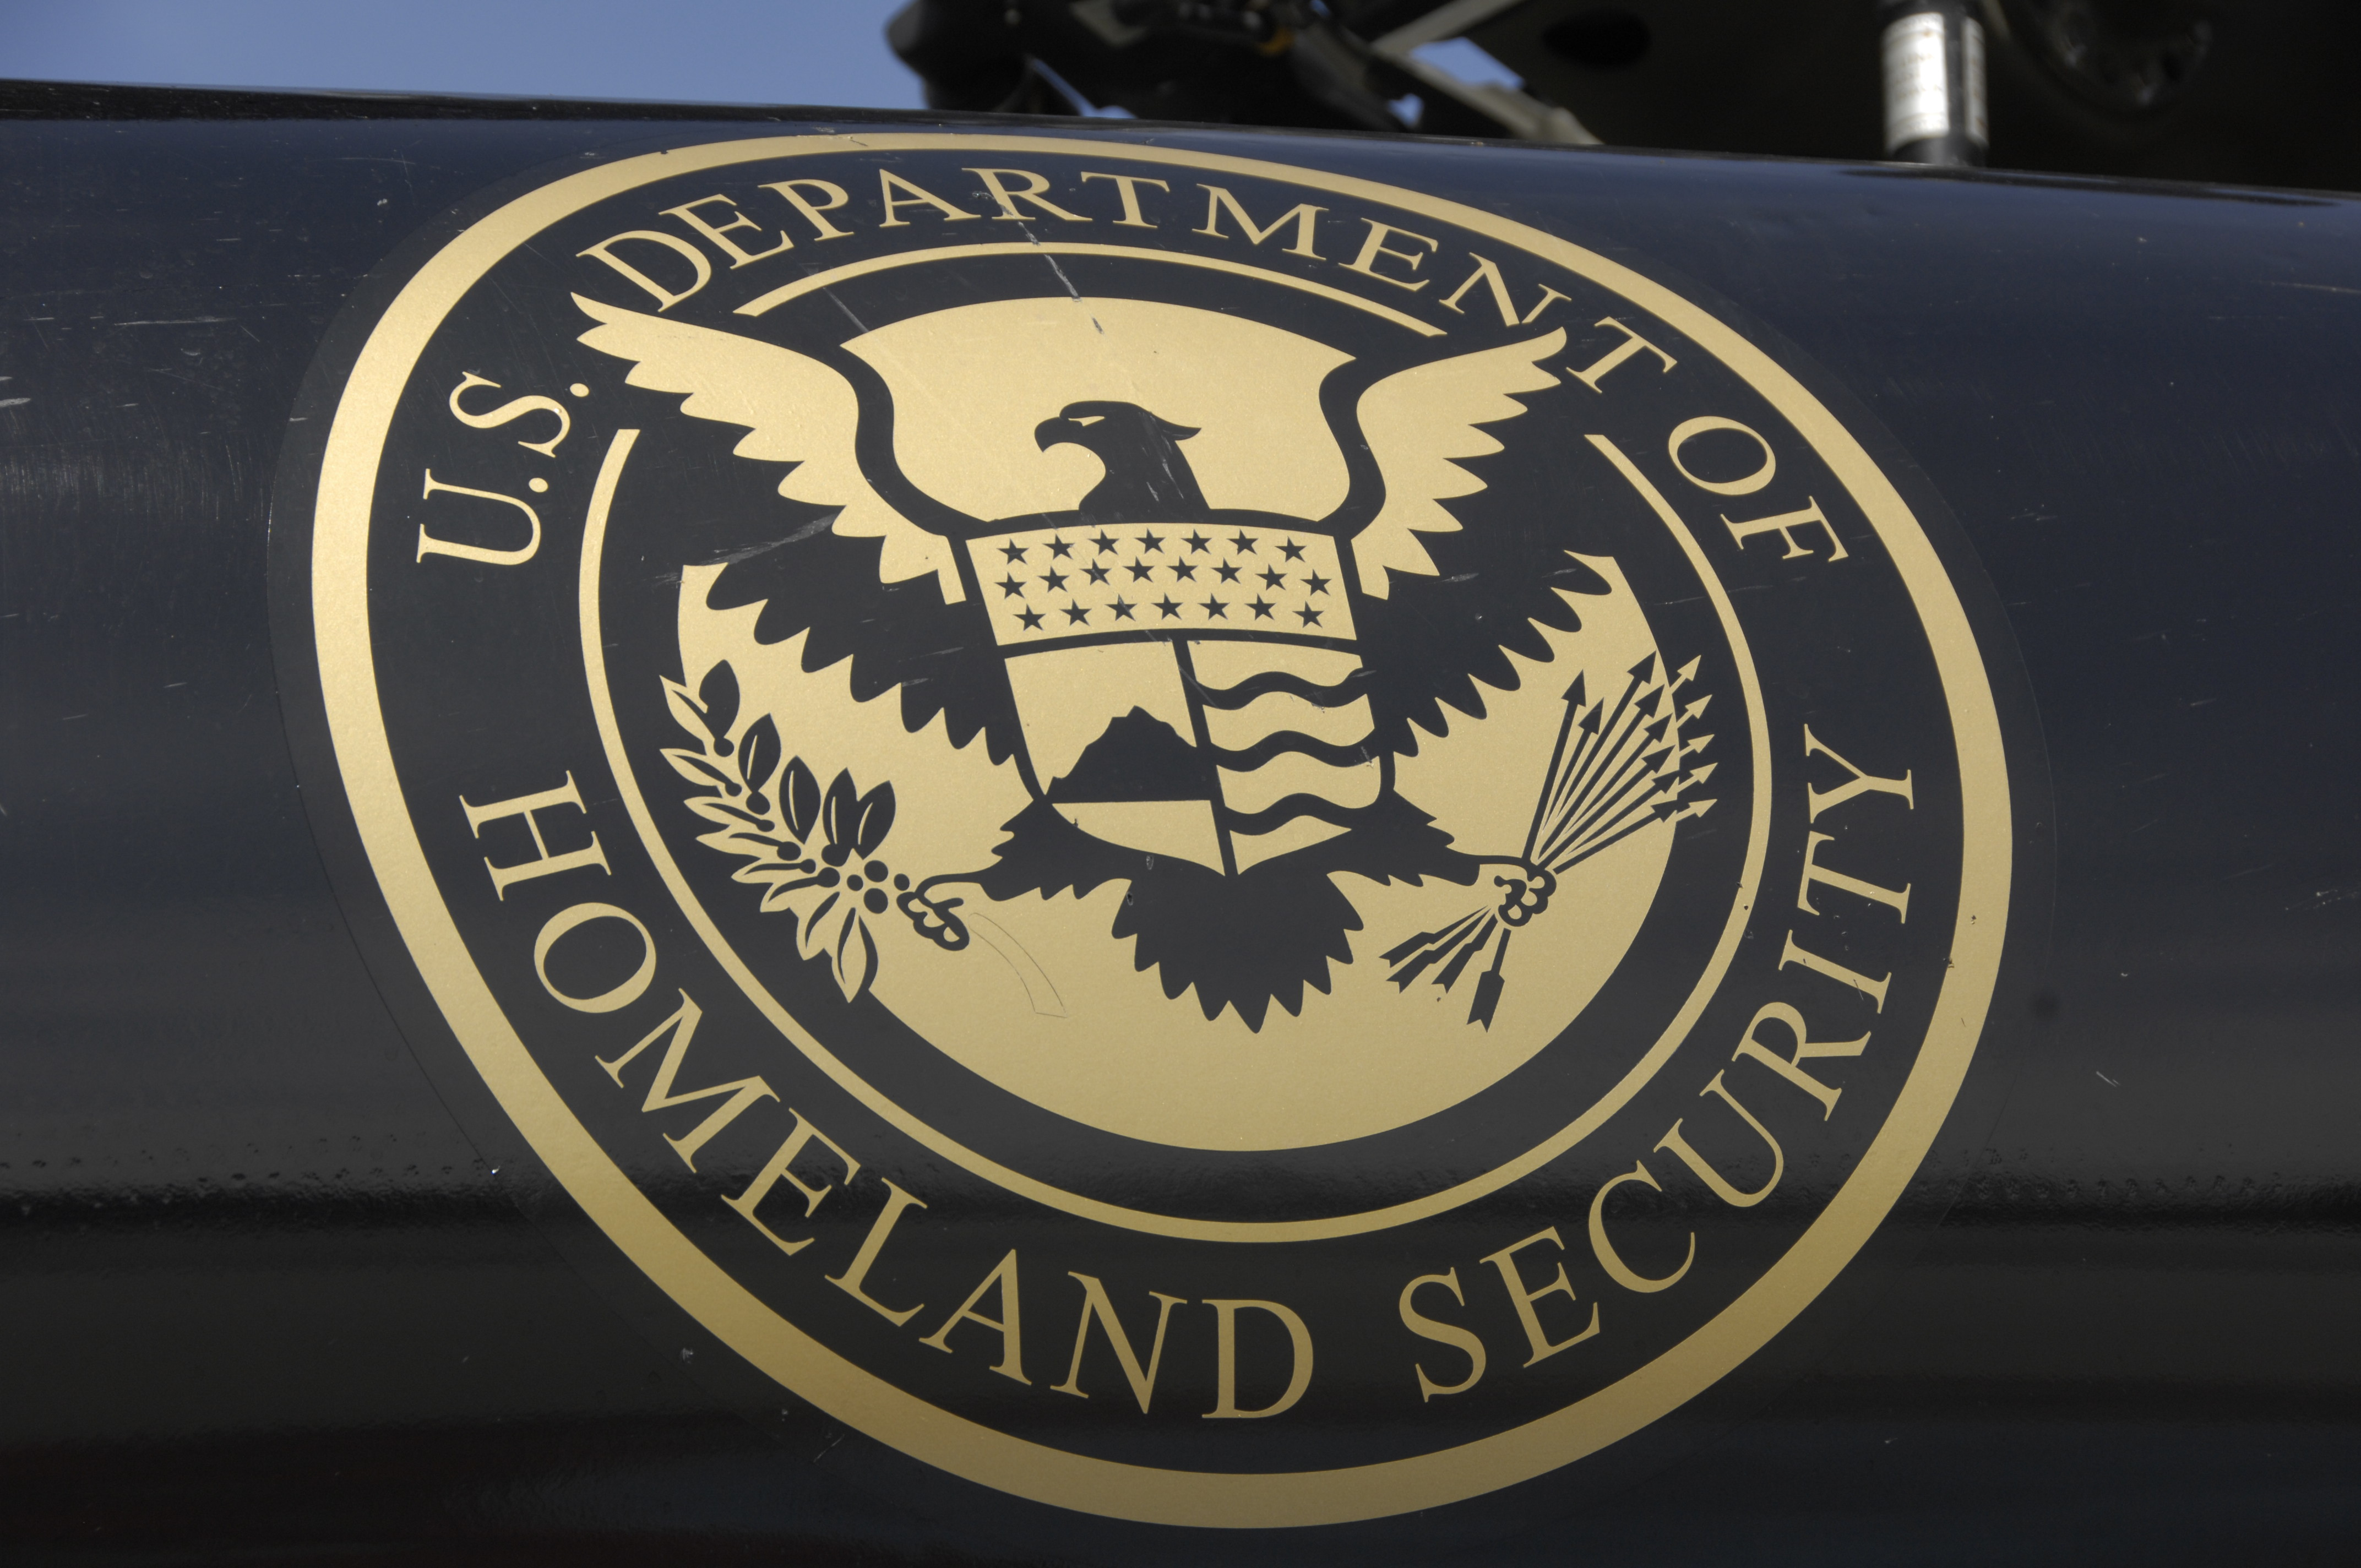 essay on the department of homeland Terrorism and homeland security is an eclectic anthology of twenty-two essays   airports (43) is the weak point in the essay (it is the department of home.